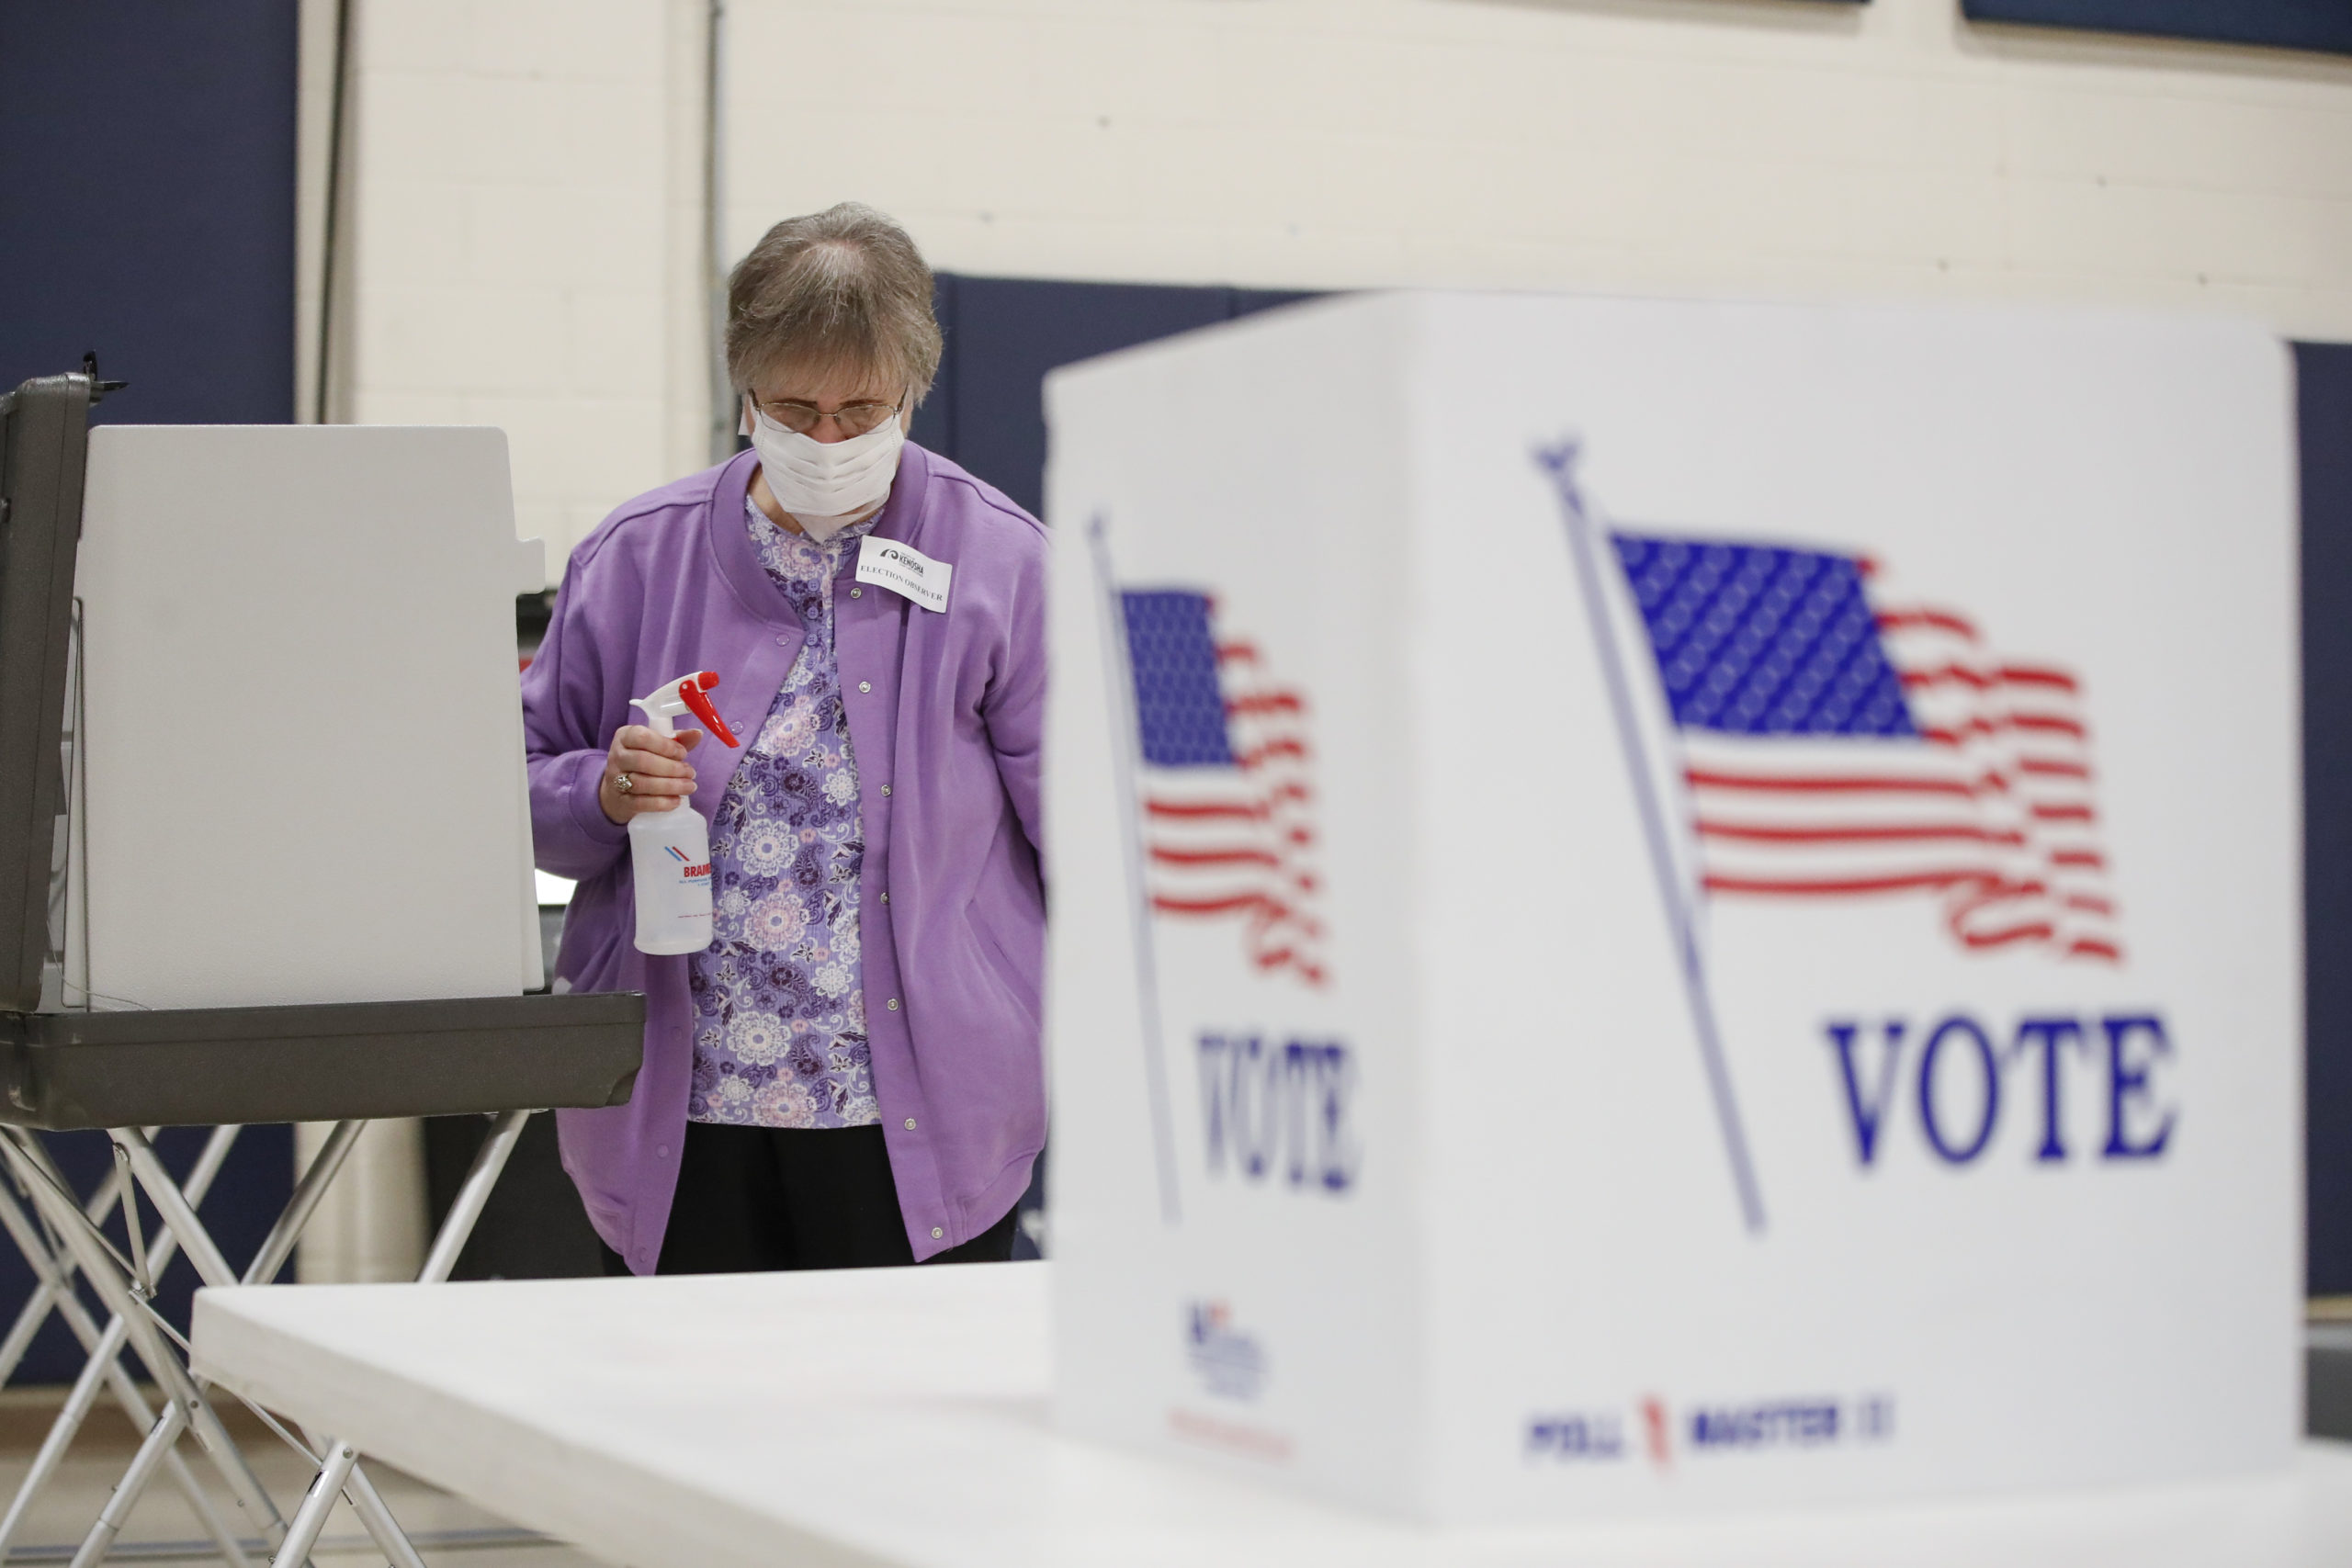 An election observer cleans voting booths in Kenosha, Wisconsin on April 7. (Kamil Krzaczynski/AFP via Getty Images)